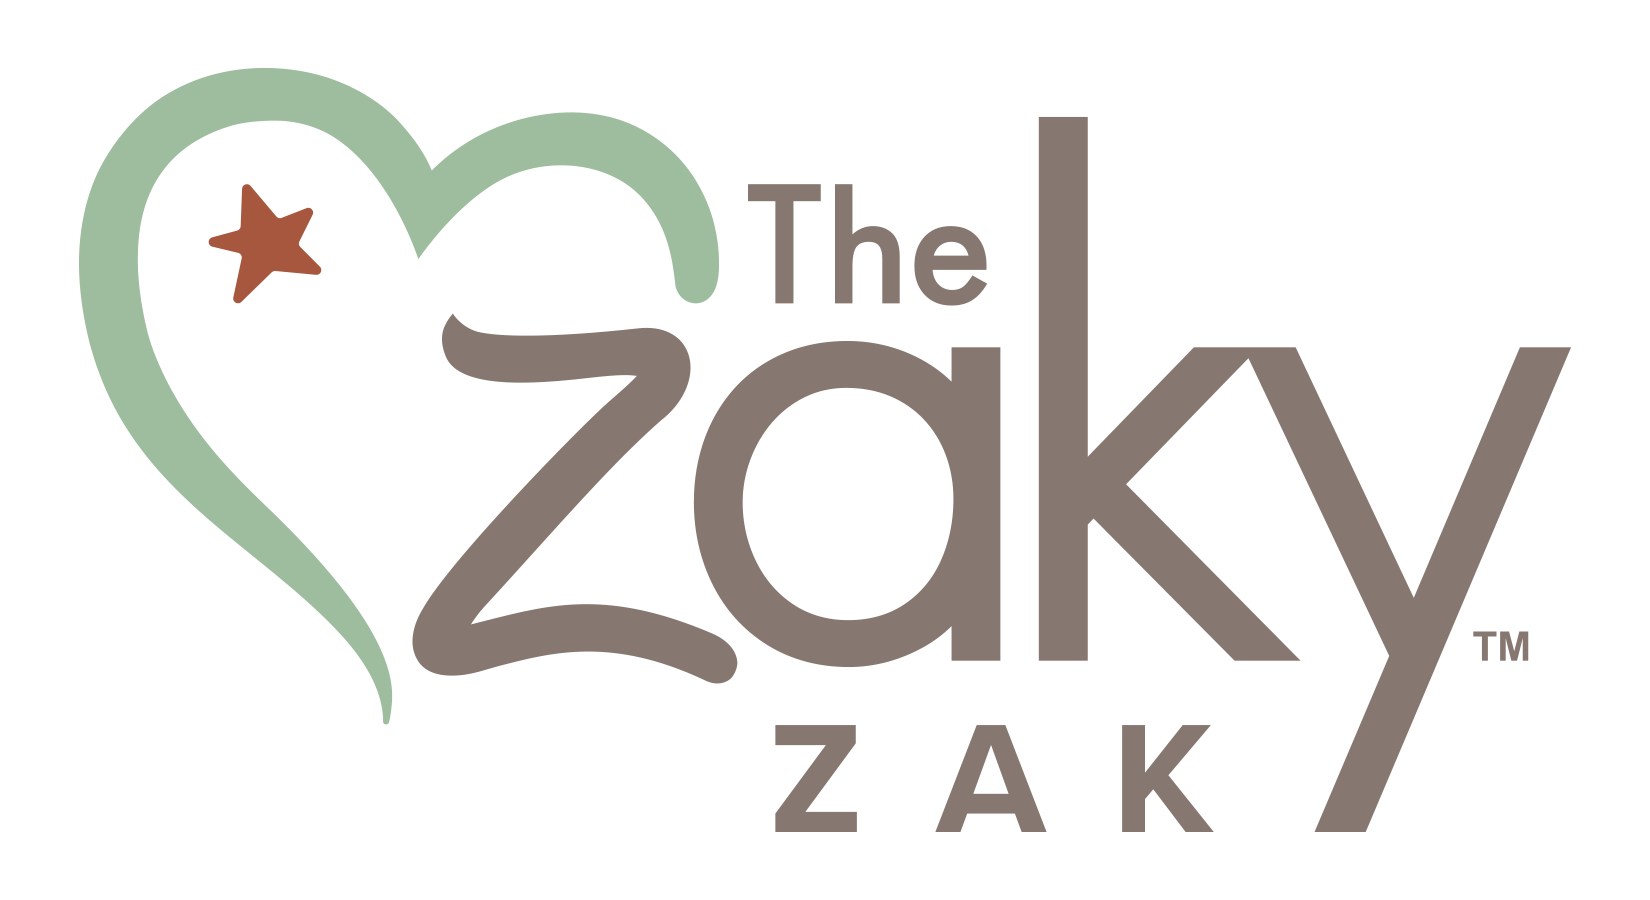 The Zaky ZAK logo